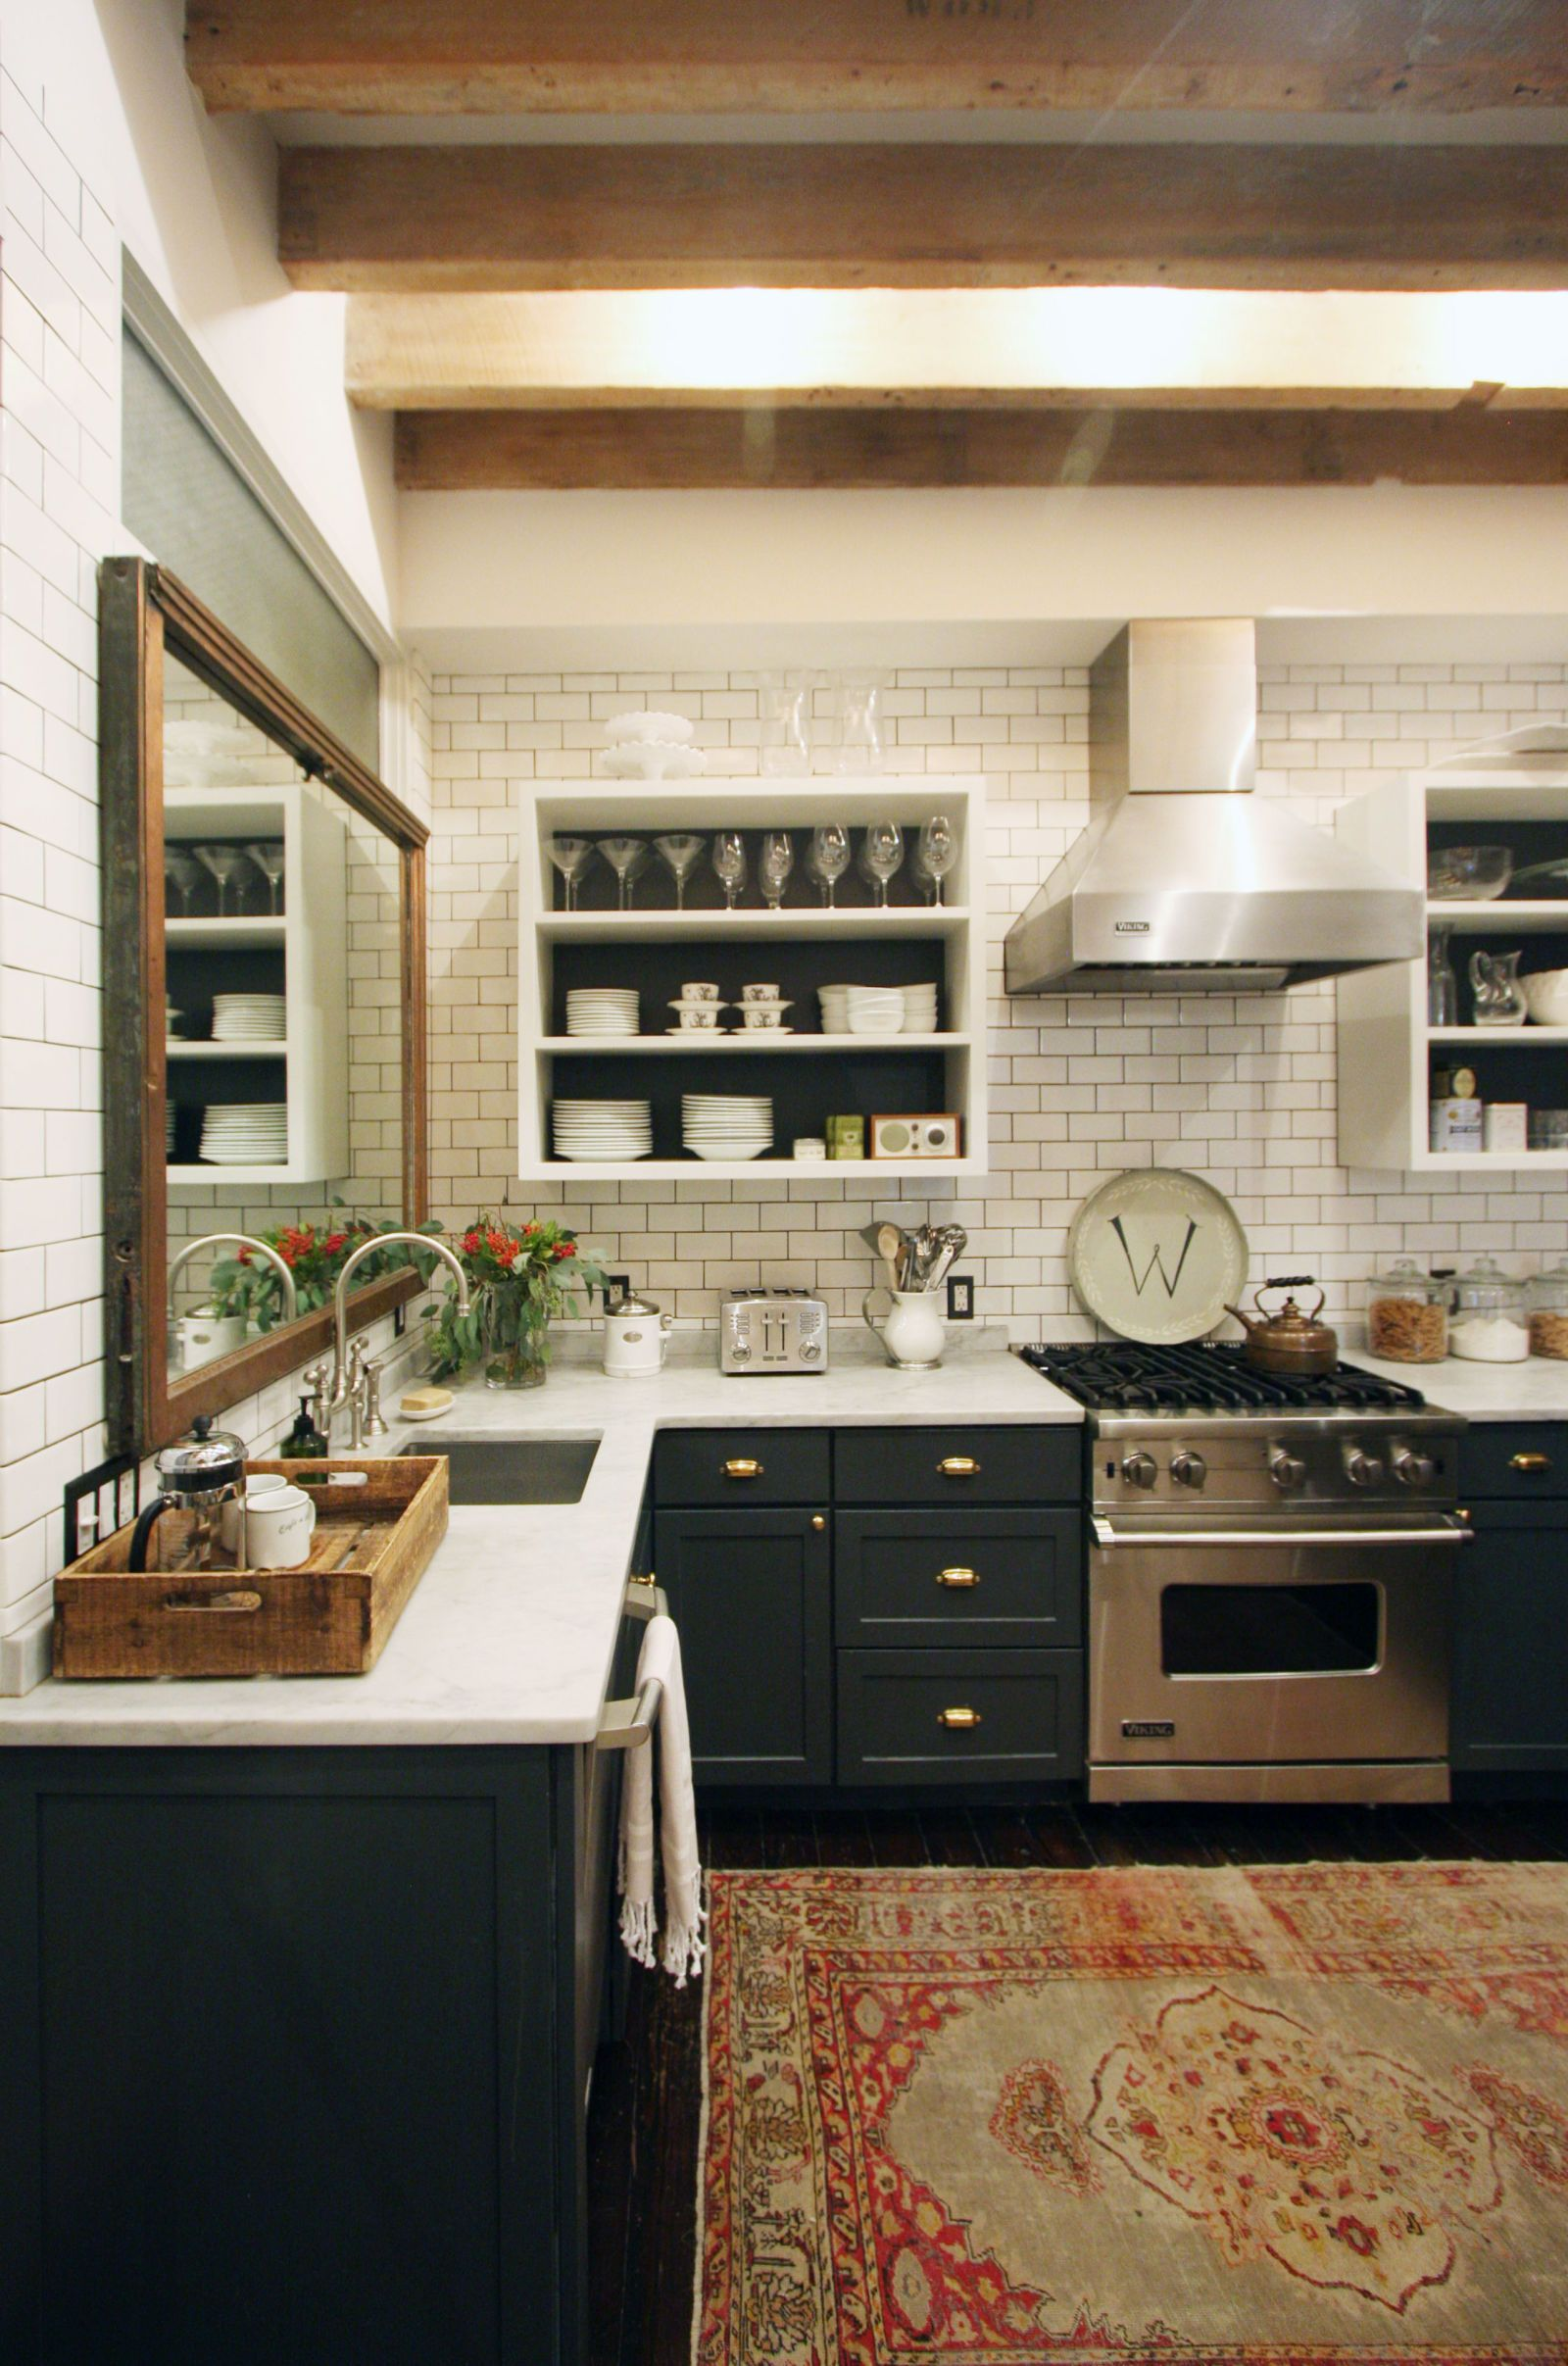 House Tour An Airy Manhattan Loft As Fashionable As Its Owner Kitchen Inspirations Home Trends Home Decor Trends